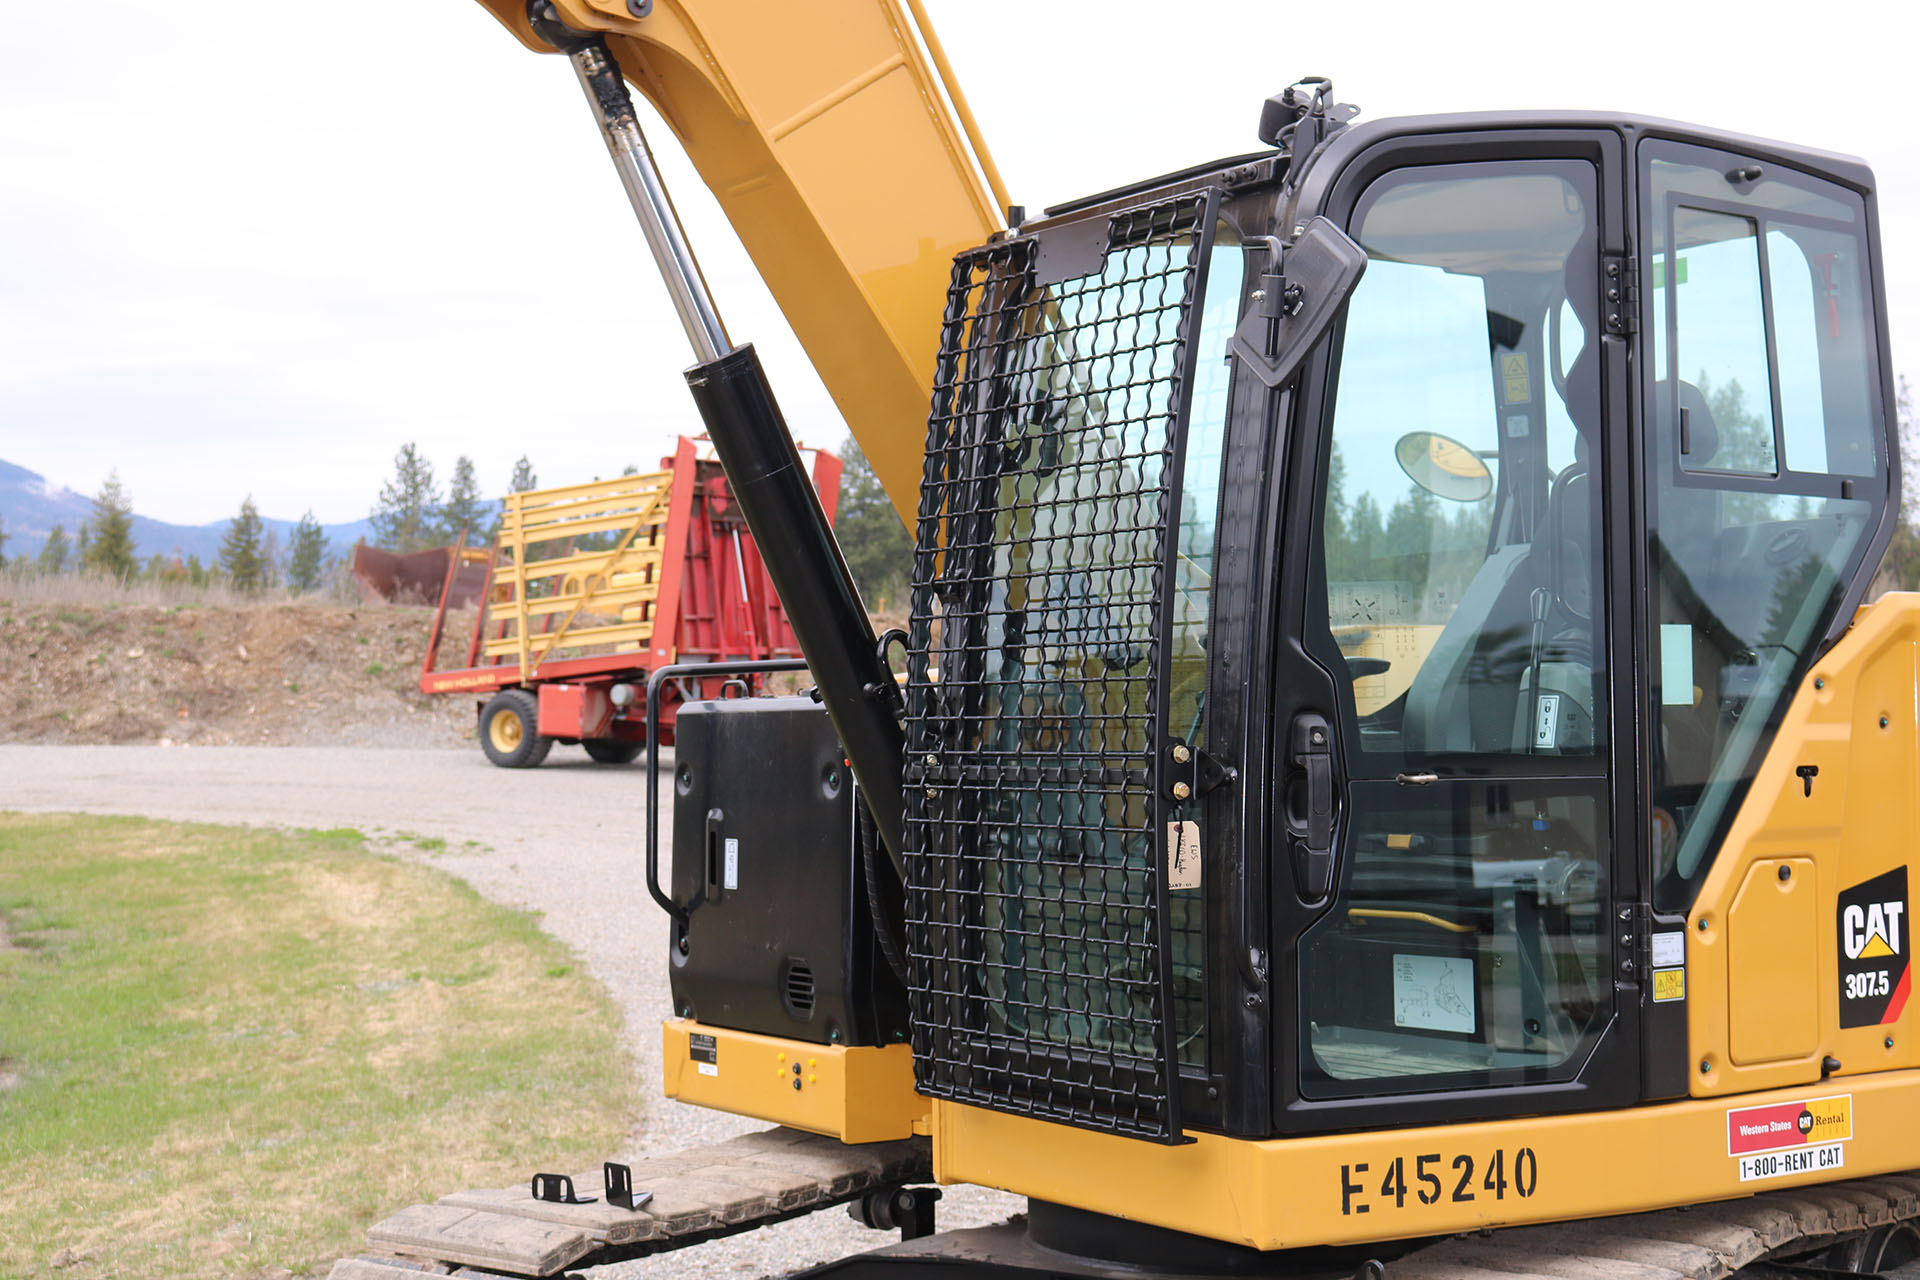 CAT 307.5 Next Generation with Bolt on Excavator Guard